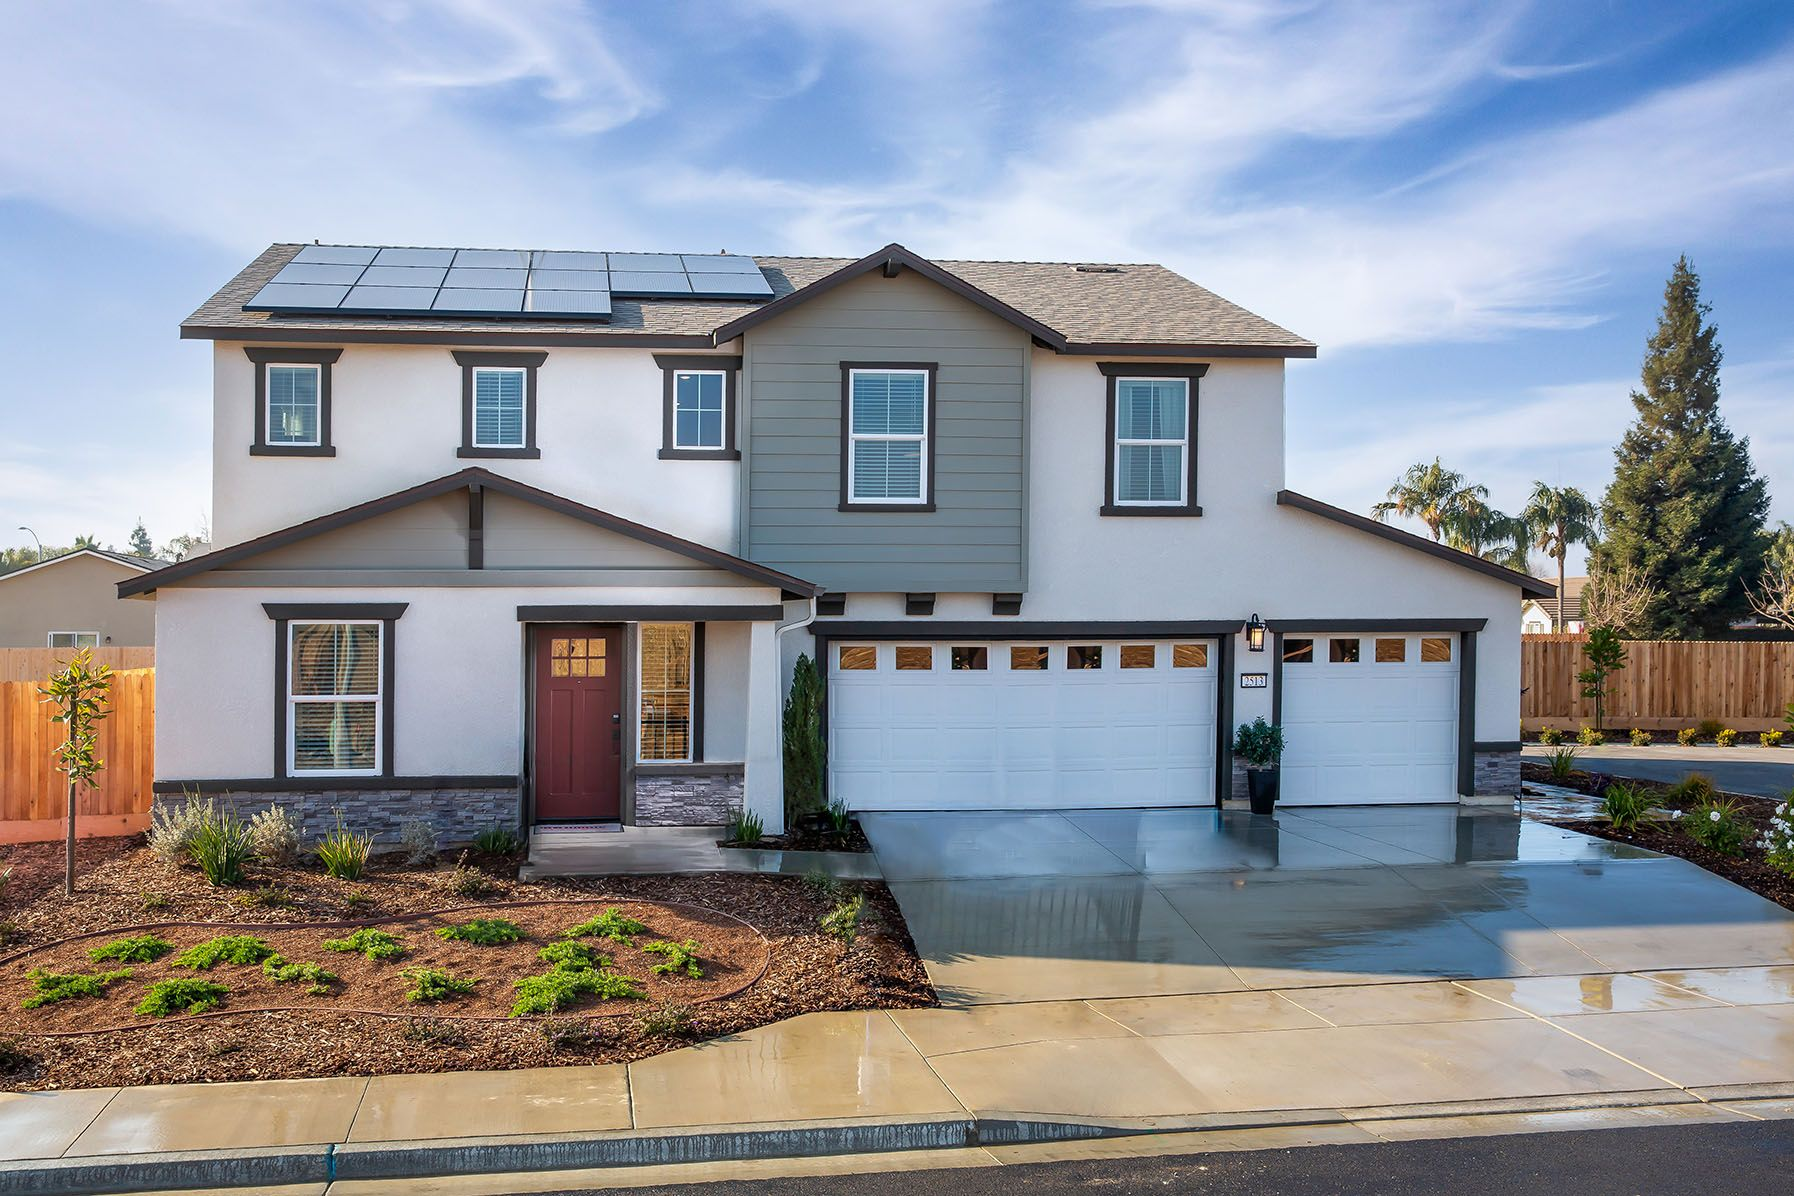 'The Villas' by D.R. Horton - Central Valley in Merced